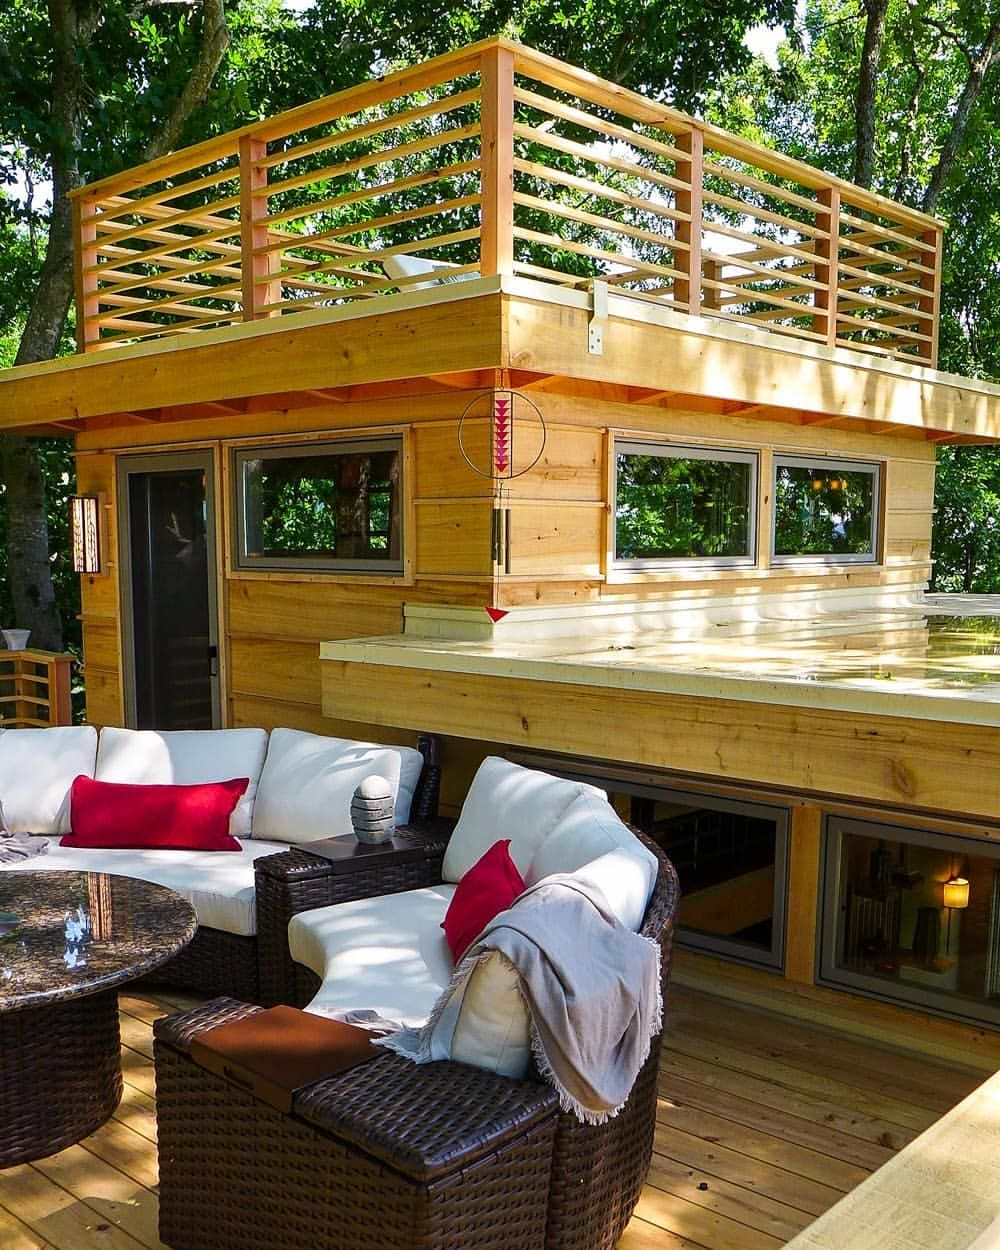 Looking forward to lots of sunny deck time up in the trees